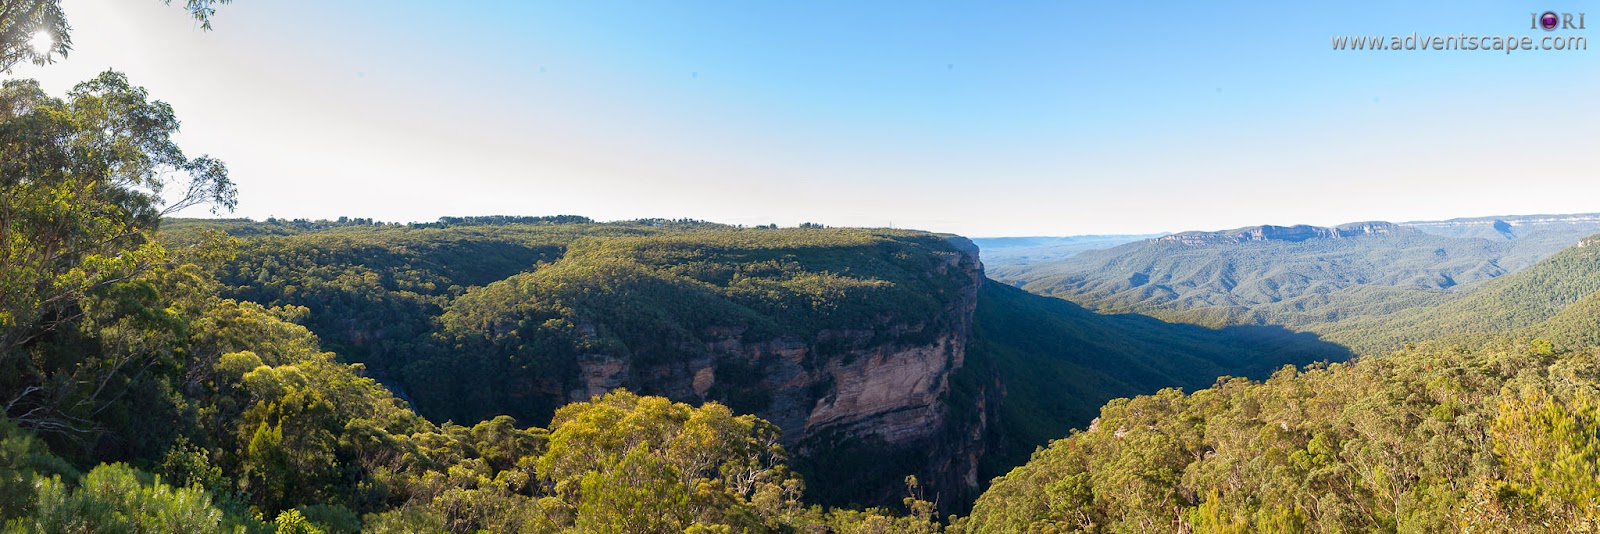 Philip Avellana, iori, adventscape, Wentworth Falls, falls, waterfalls, tourism, hike, track, bush walk, NSW, New South Wales, Australia, Katoomba, Wentworth, Australia, Blue Mountains, wentworth falls, lookout